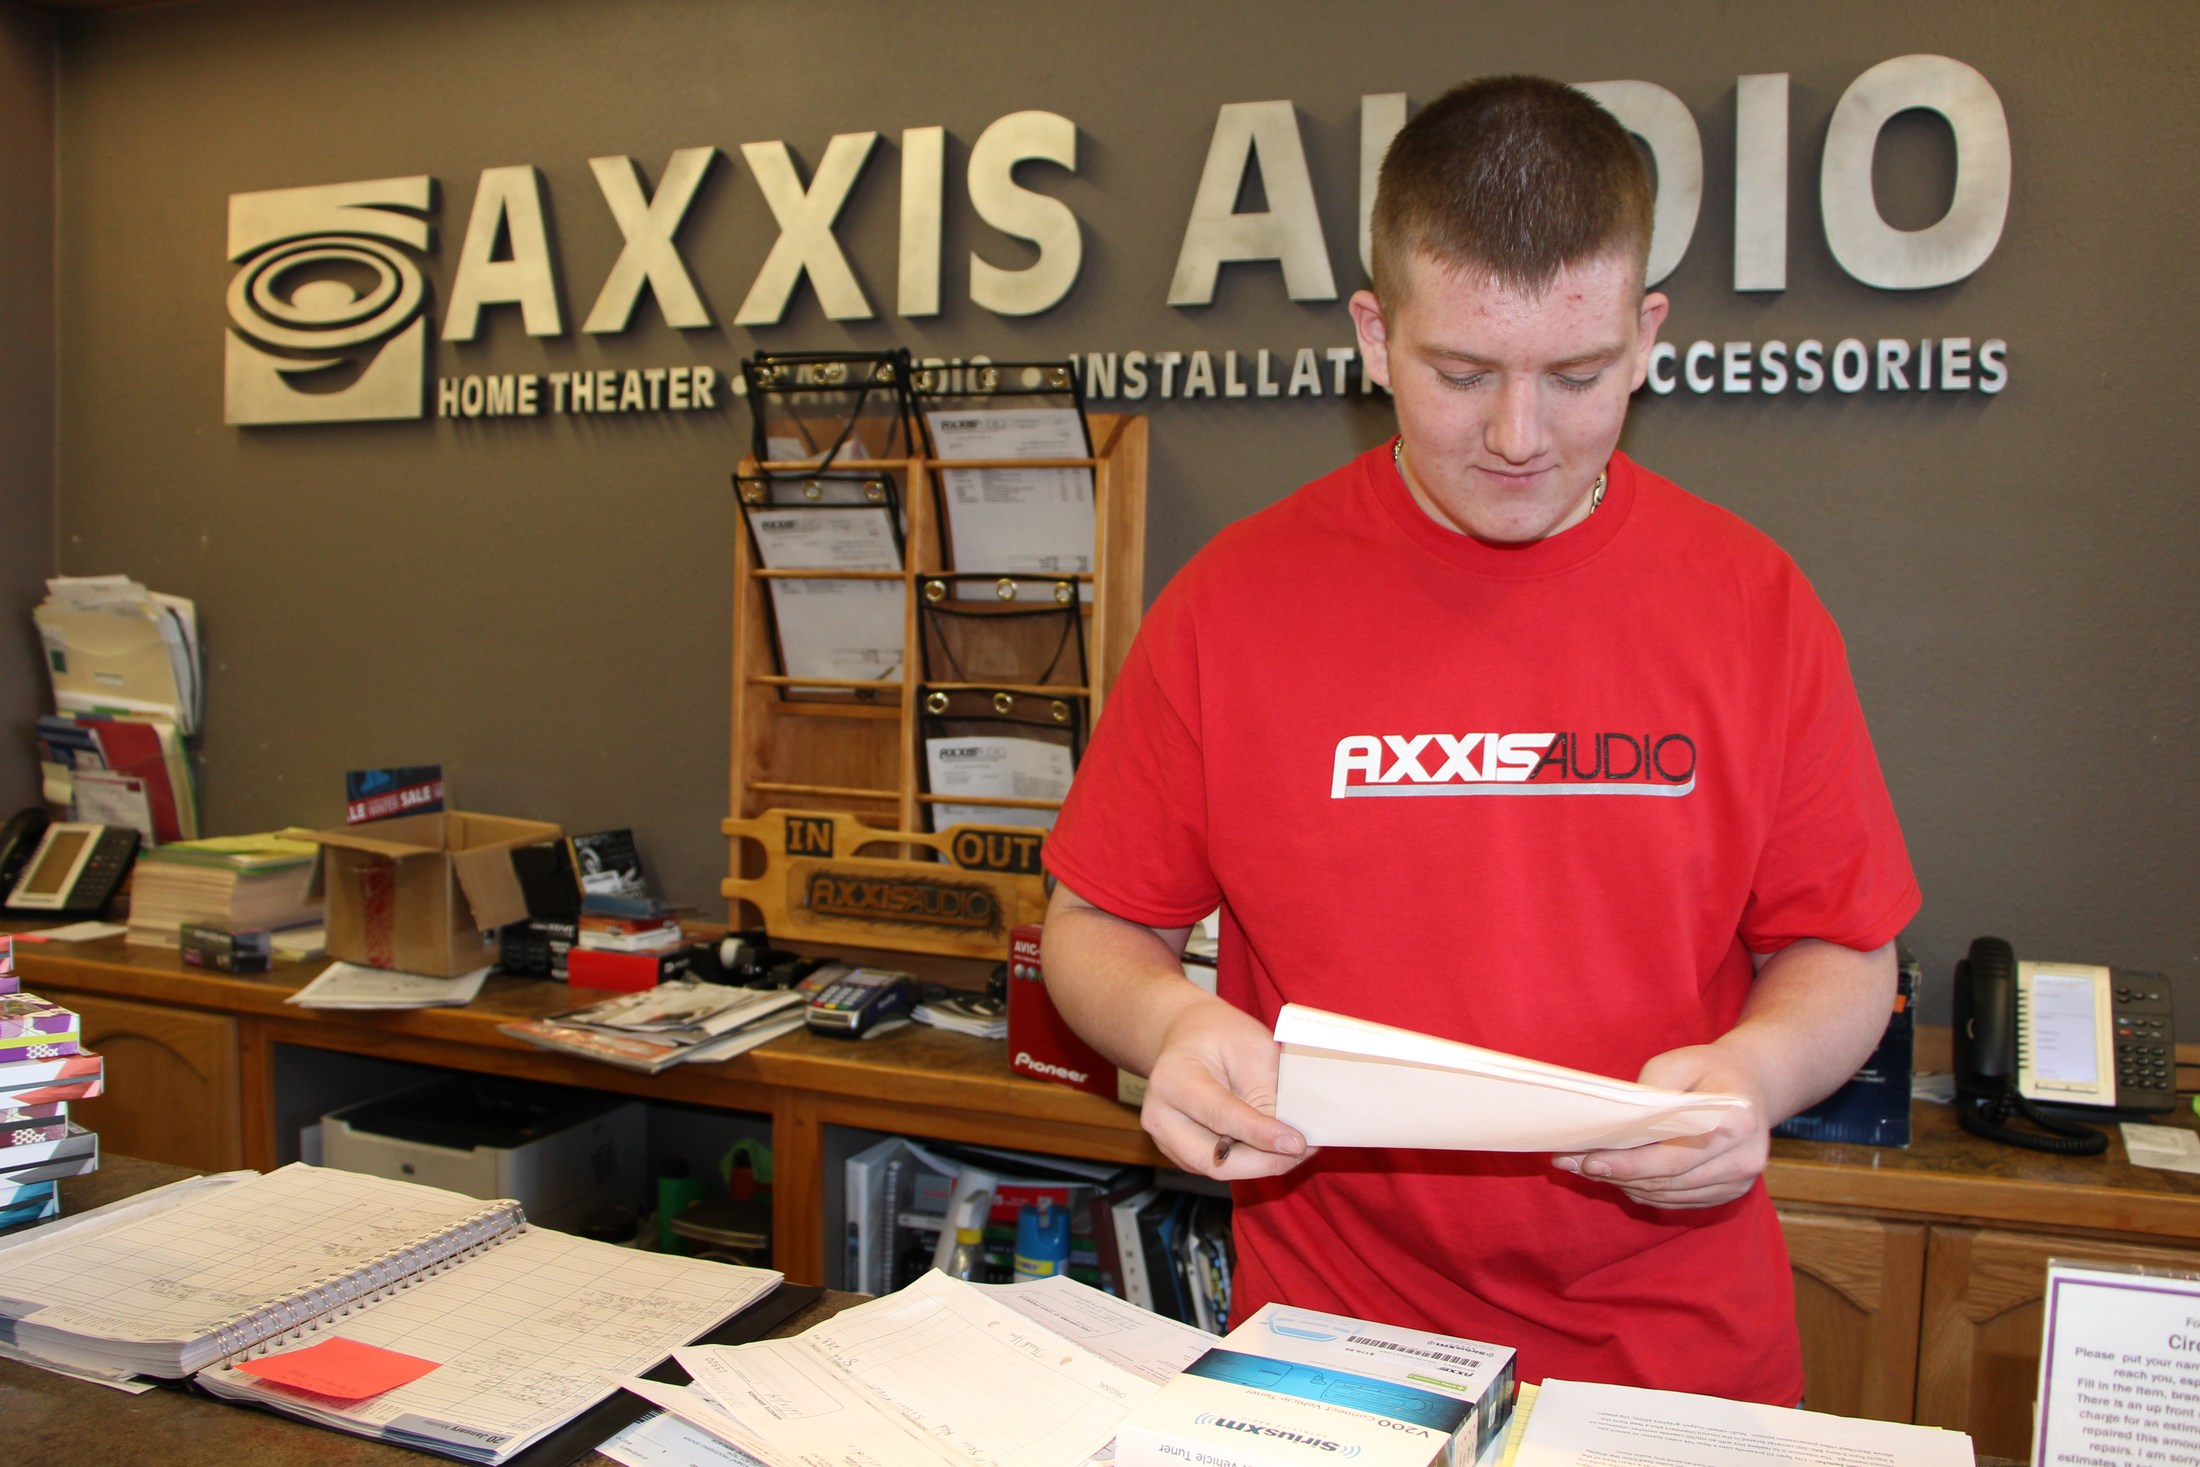 Student at their internship with AXXIS.